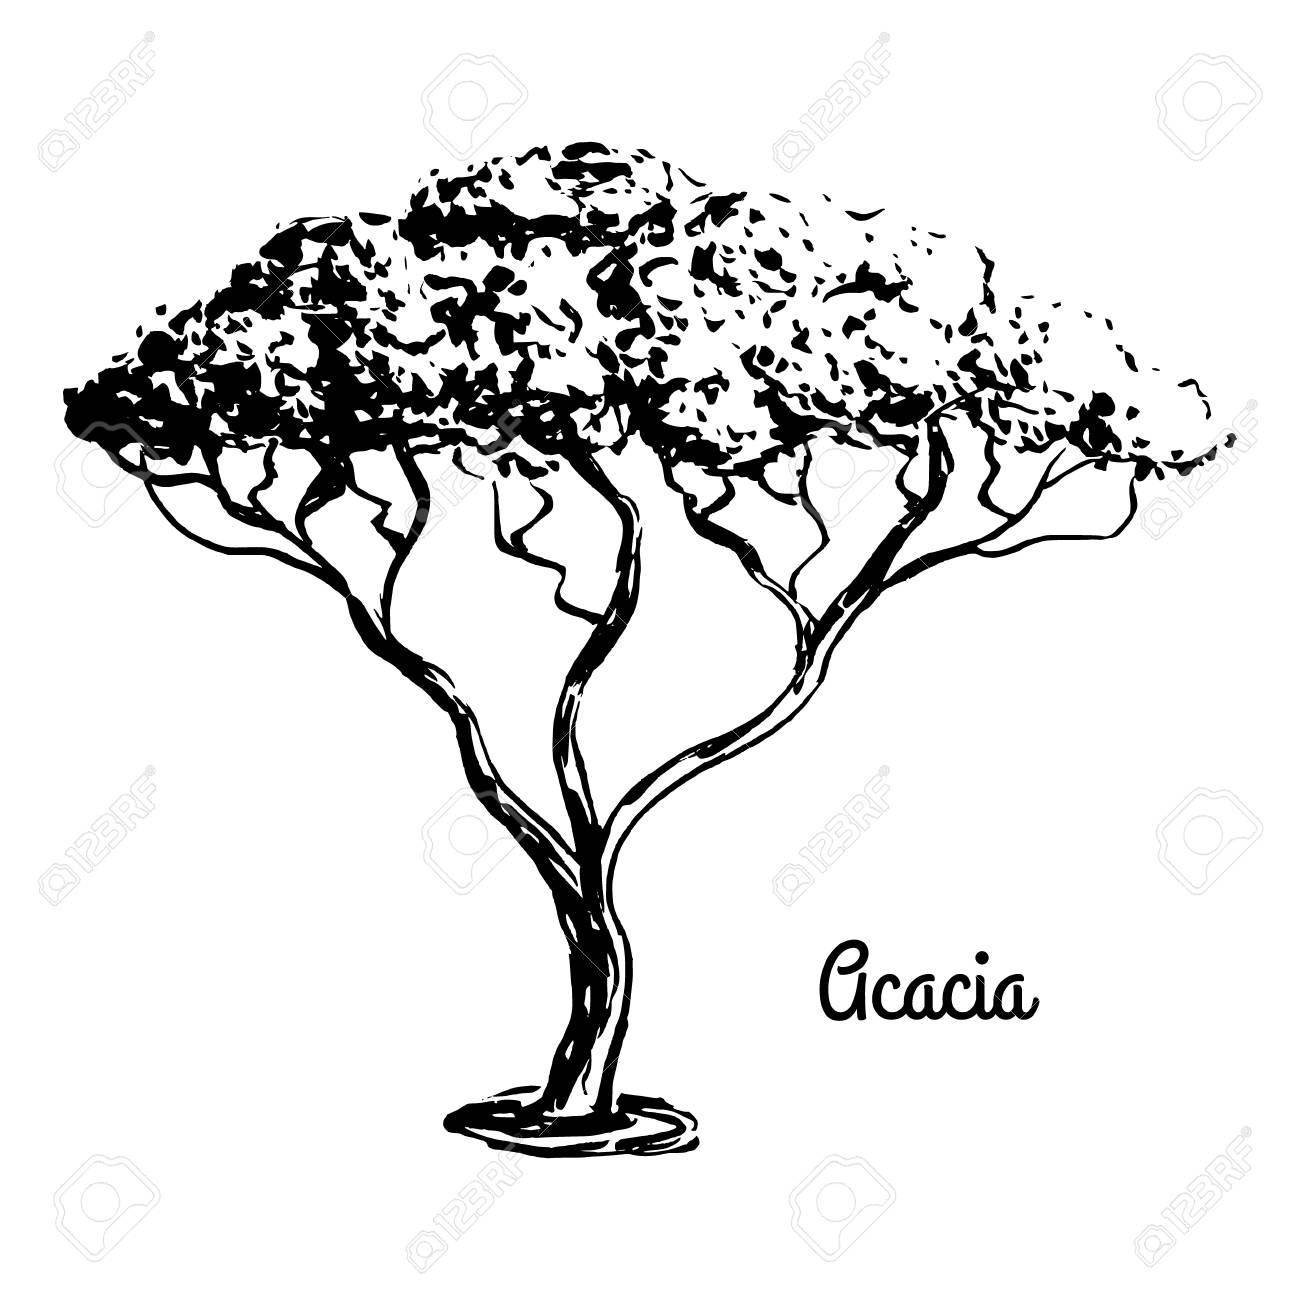 1300x1300 Vector Sketch Illustration. Black Silhouette Of Acacia Isolated